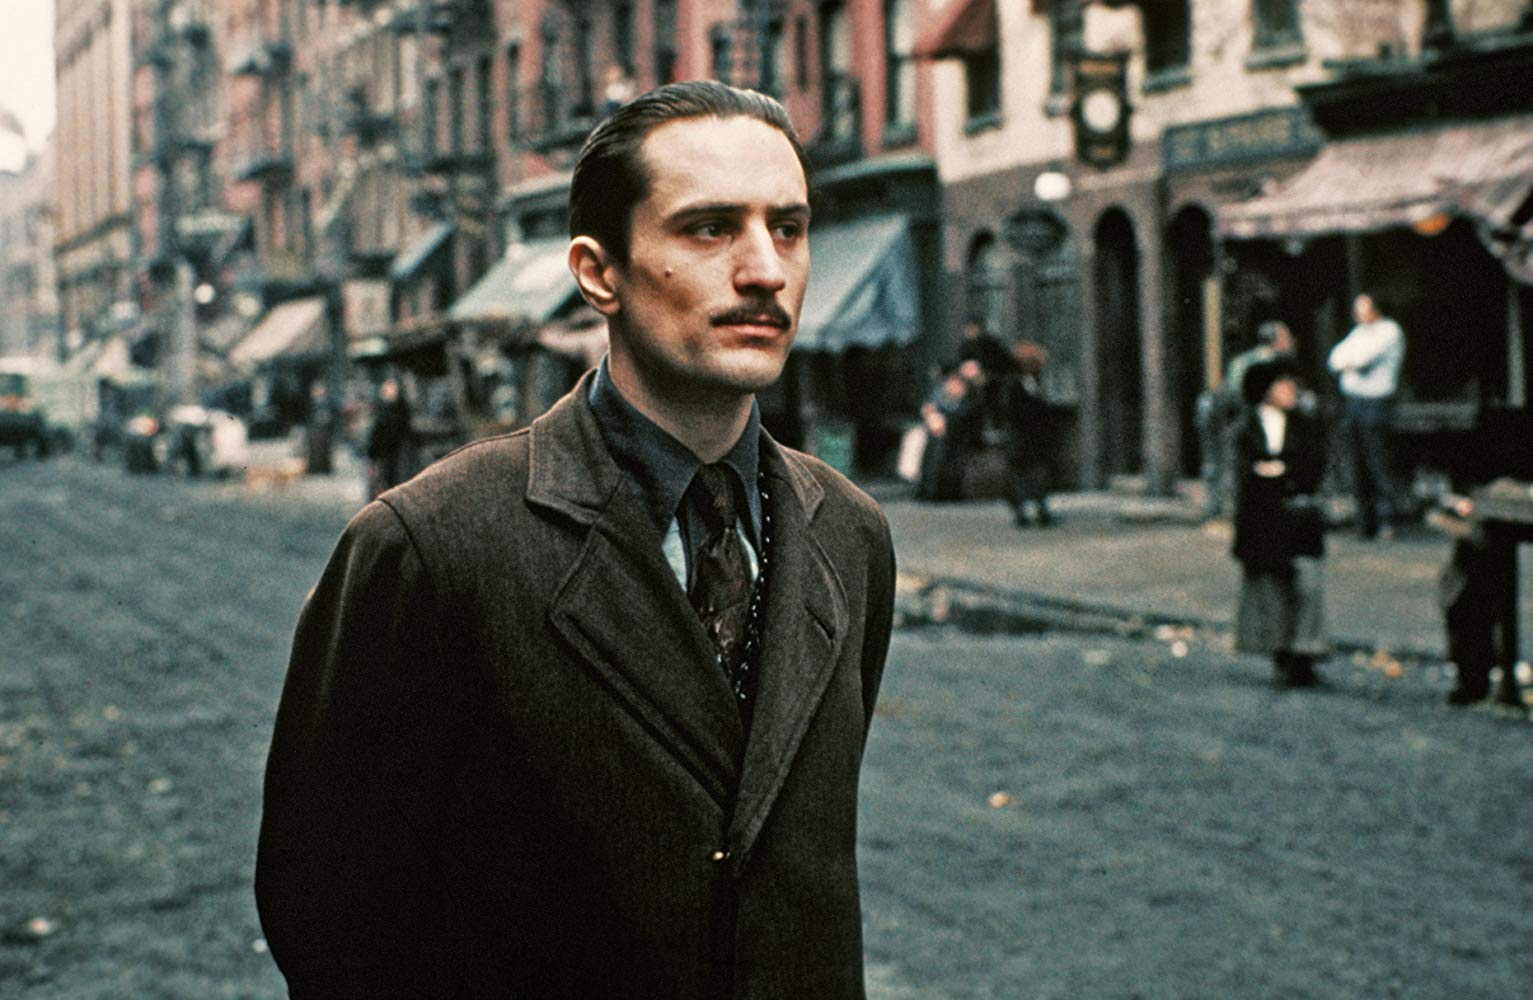 Still from The Godfather II